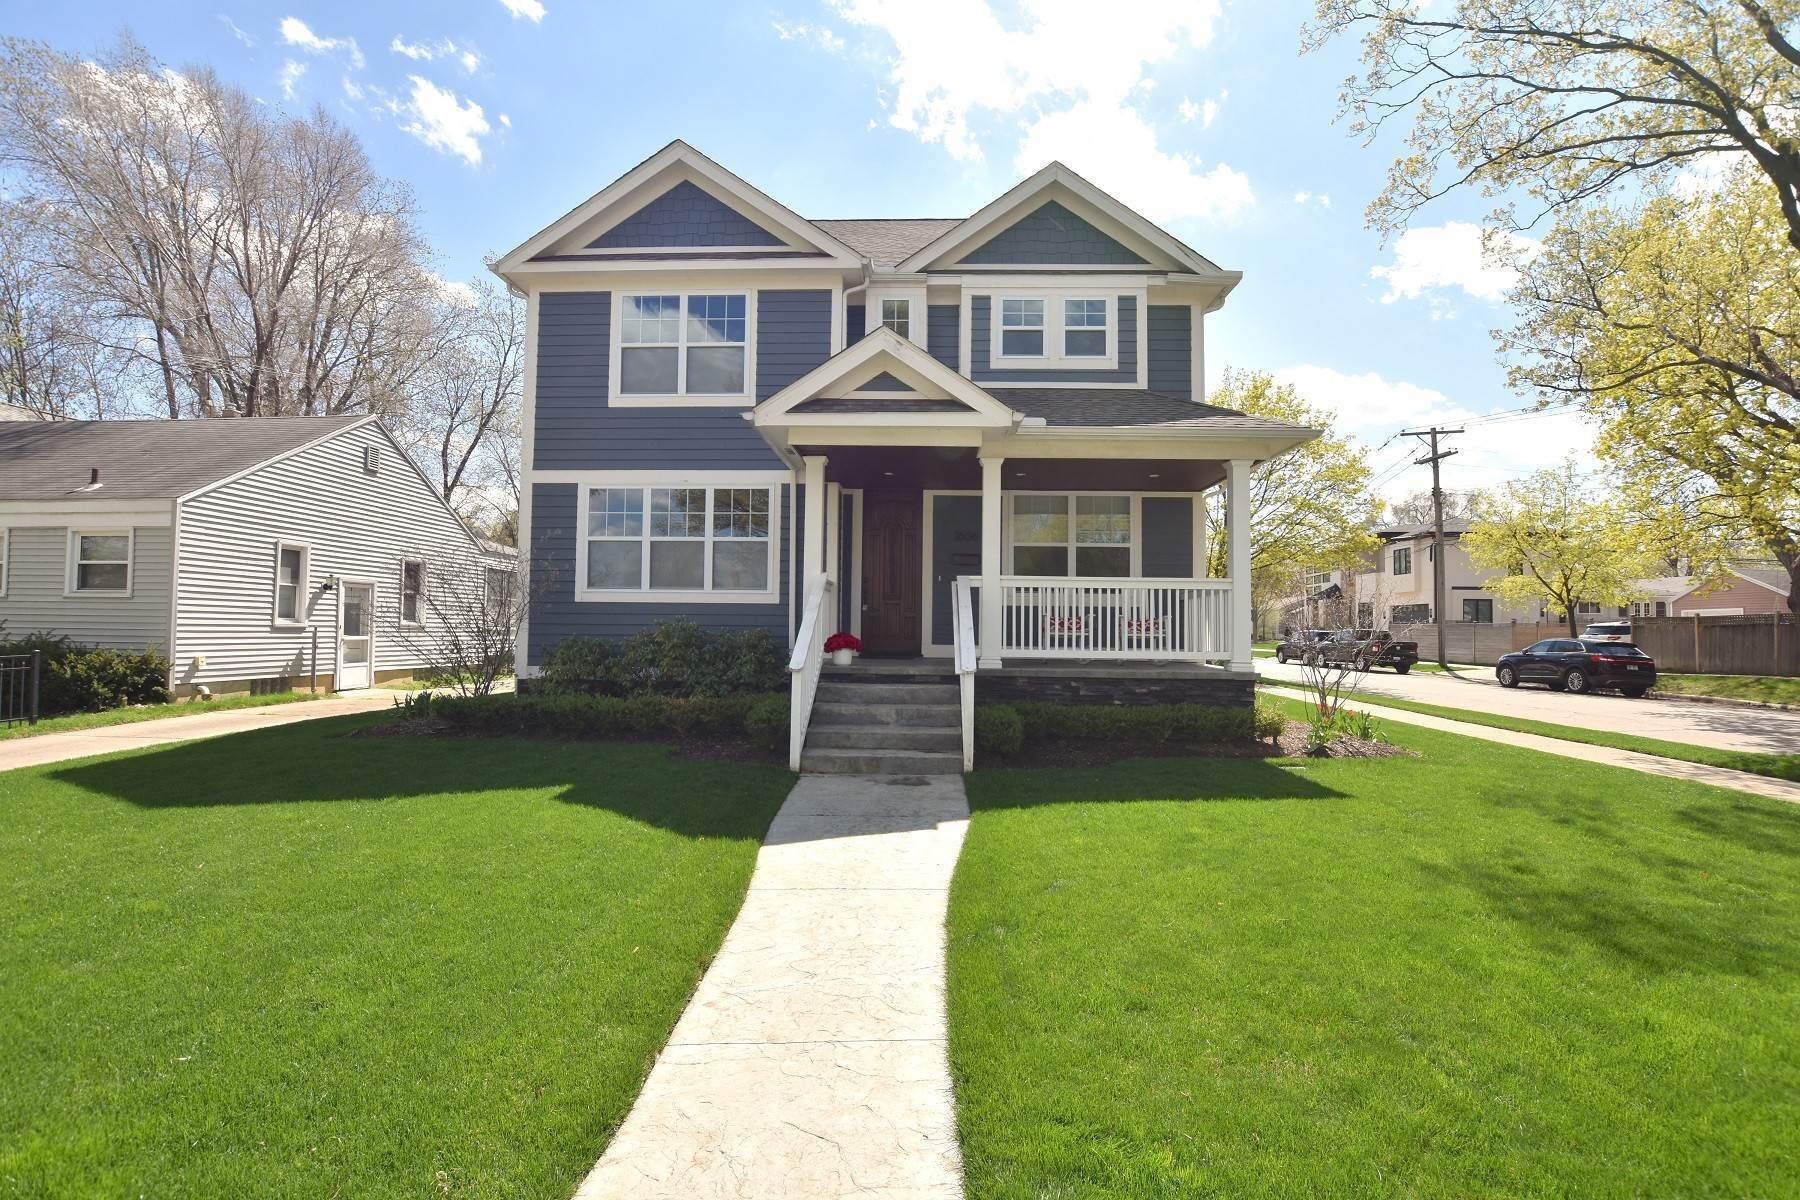 Single Family Homes for Sale at Birmingham 1606 Humphrey Avenue Birmingham, Michigan 48009 United States